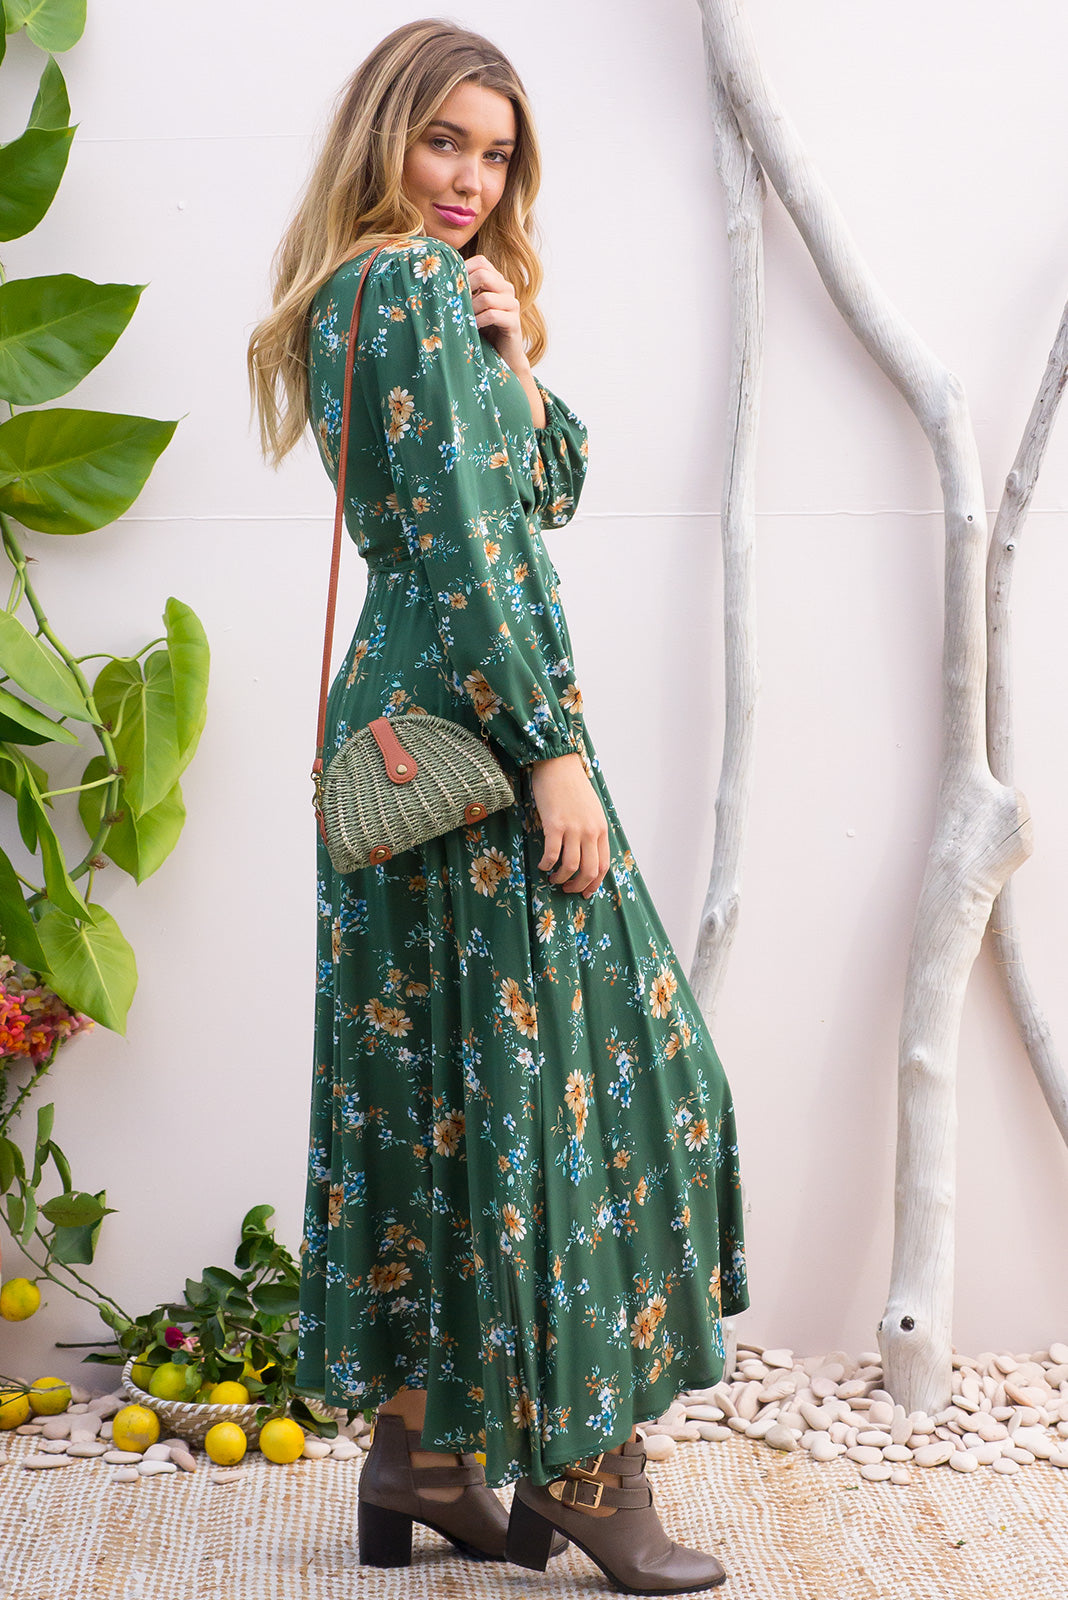 Daydreamer Green Maxi Wrap Dress with a full length sleeve in a wrap around style in a romantic bohemian floral print on a dusky green base on a soft woven rayon fabric